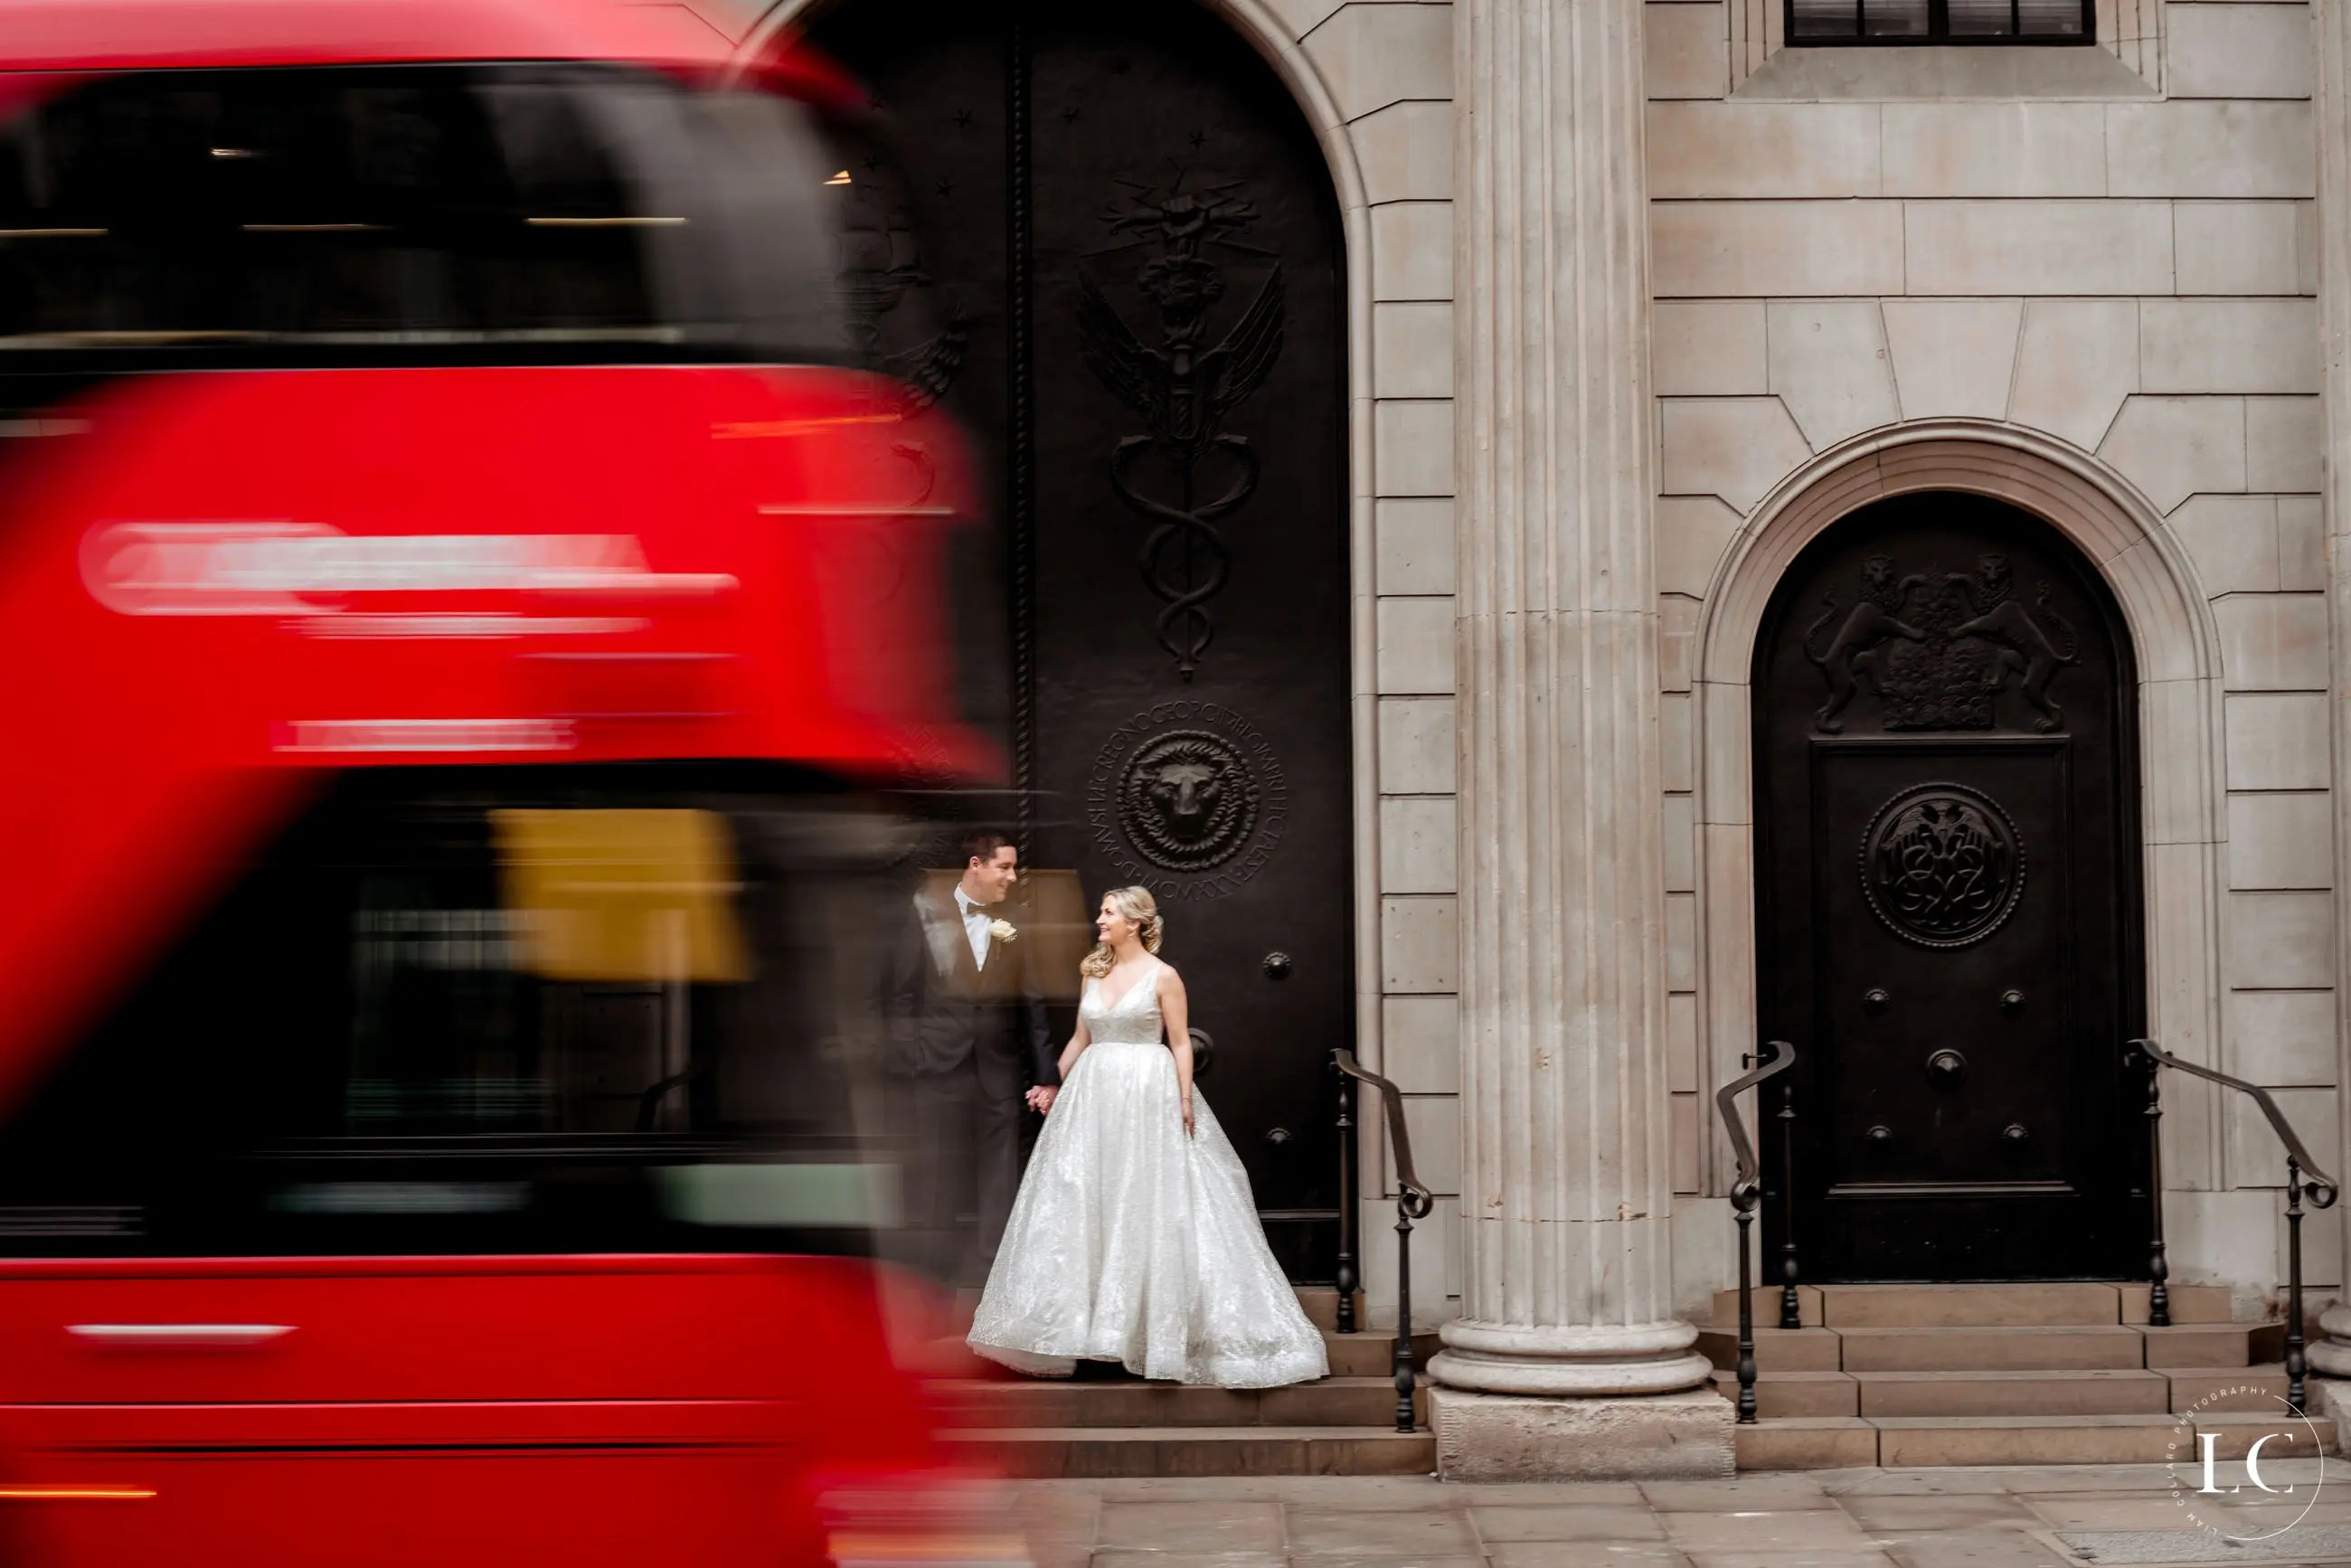 Bride and groom outside London bus